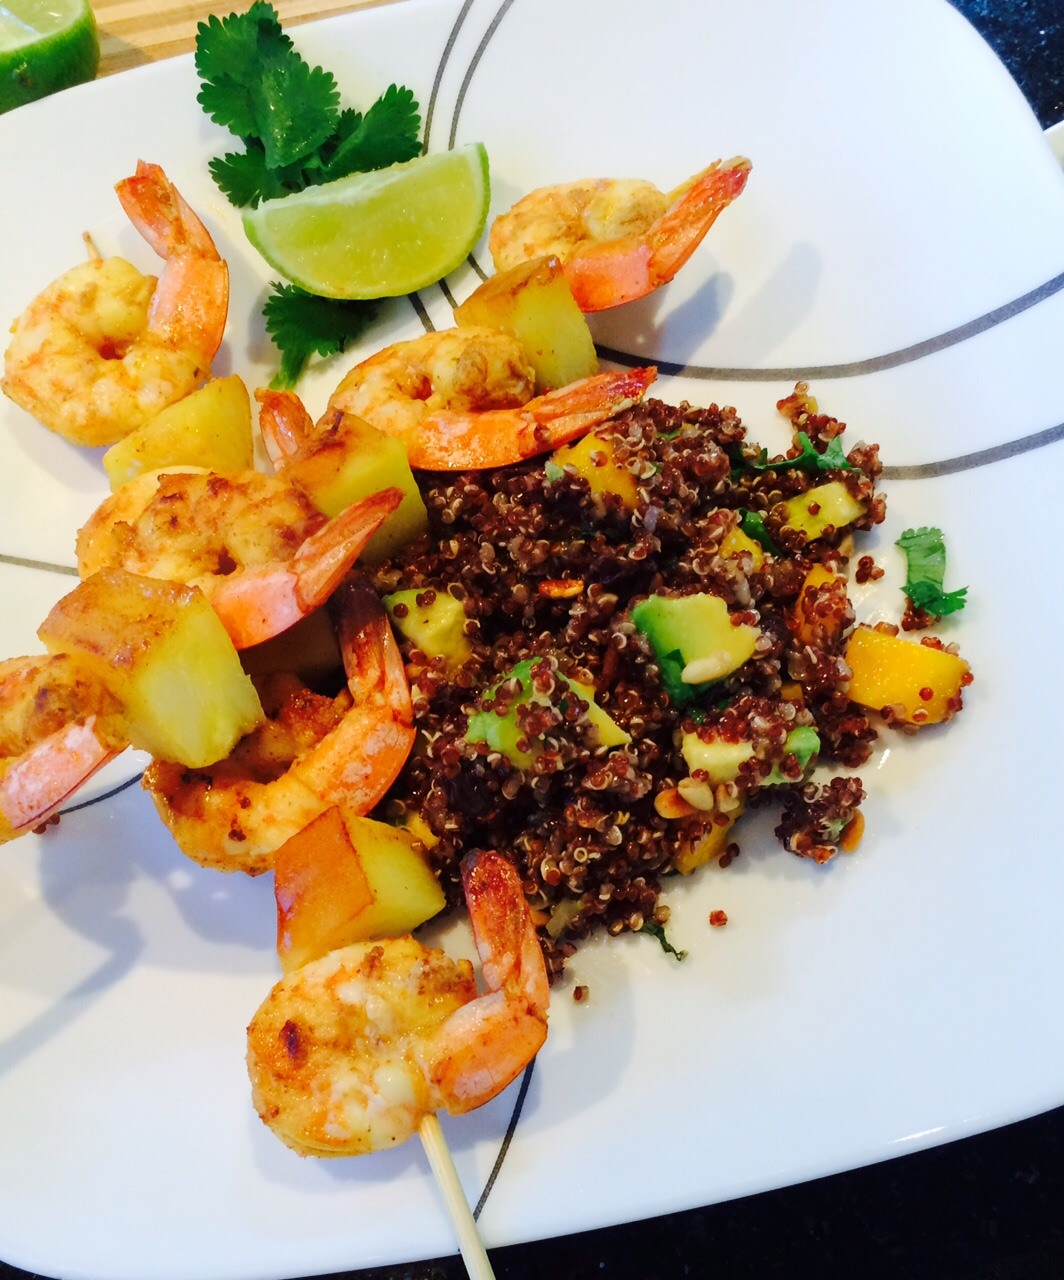 LADY MARGARET Spicy Shrimp Quinoa Salad with avocado and mango